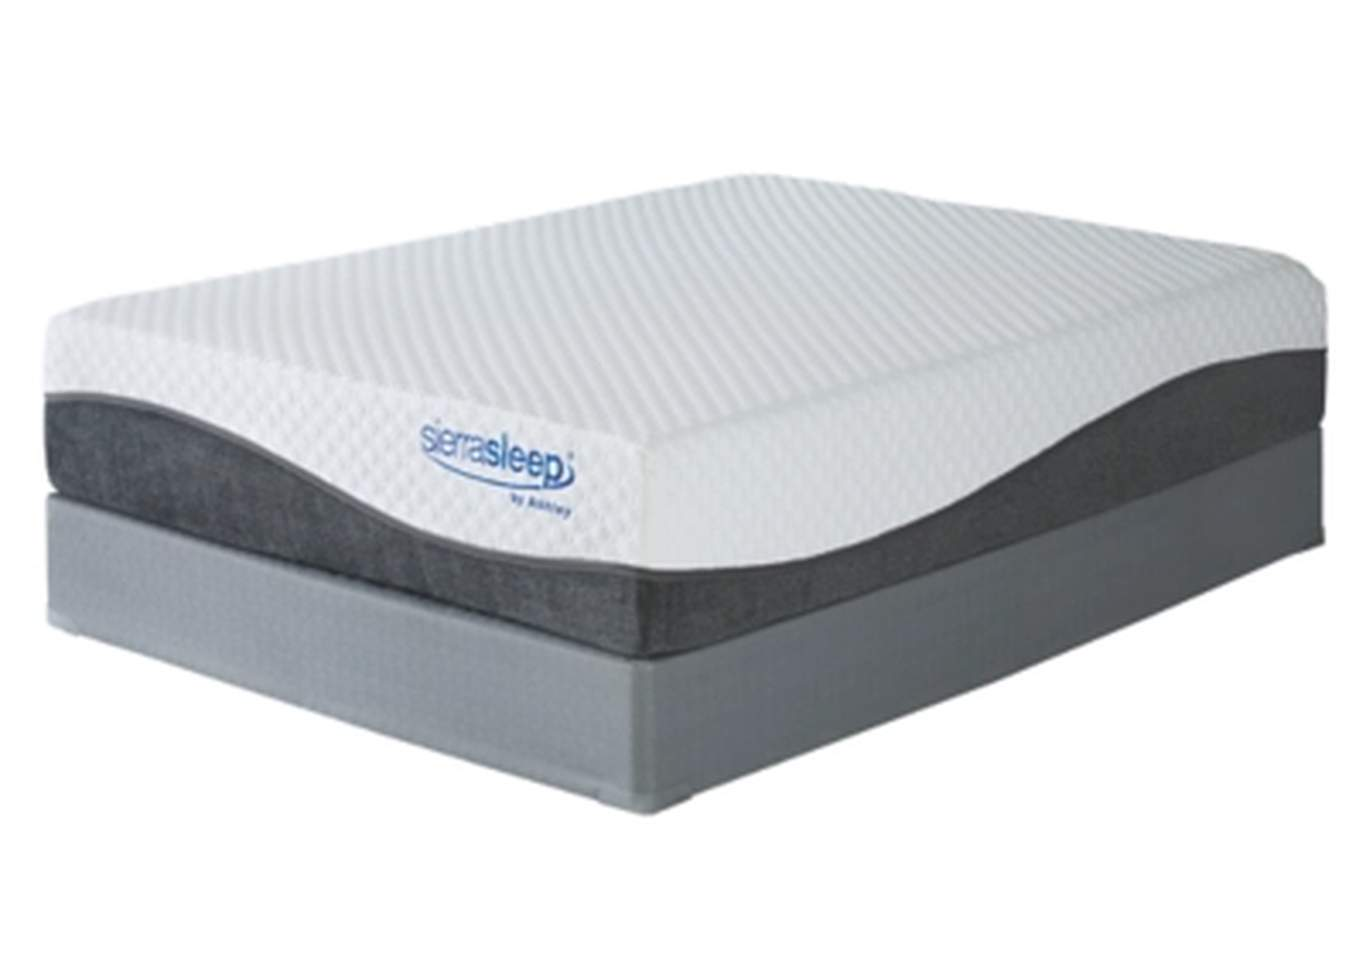 Mygel Hybrid 1300 California King Mattress w/Foundation,Sierra Sleep by Ashley